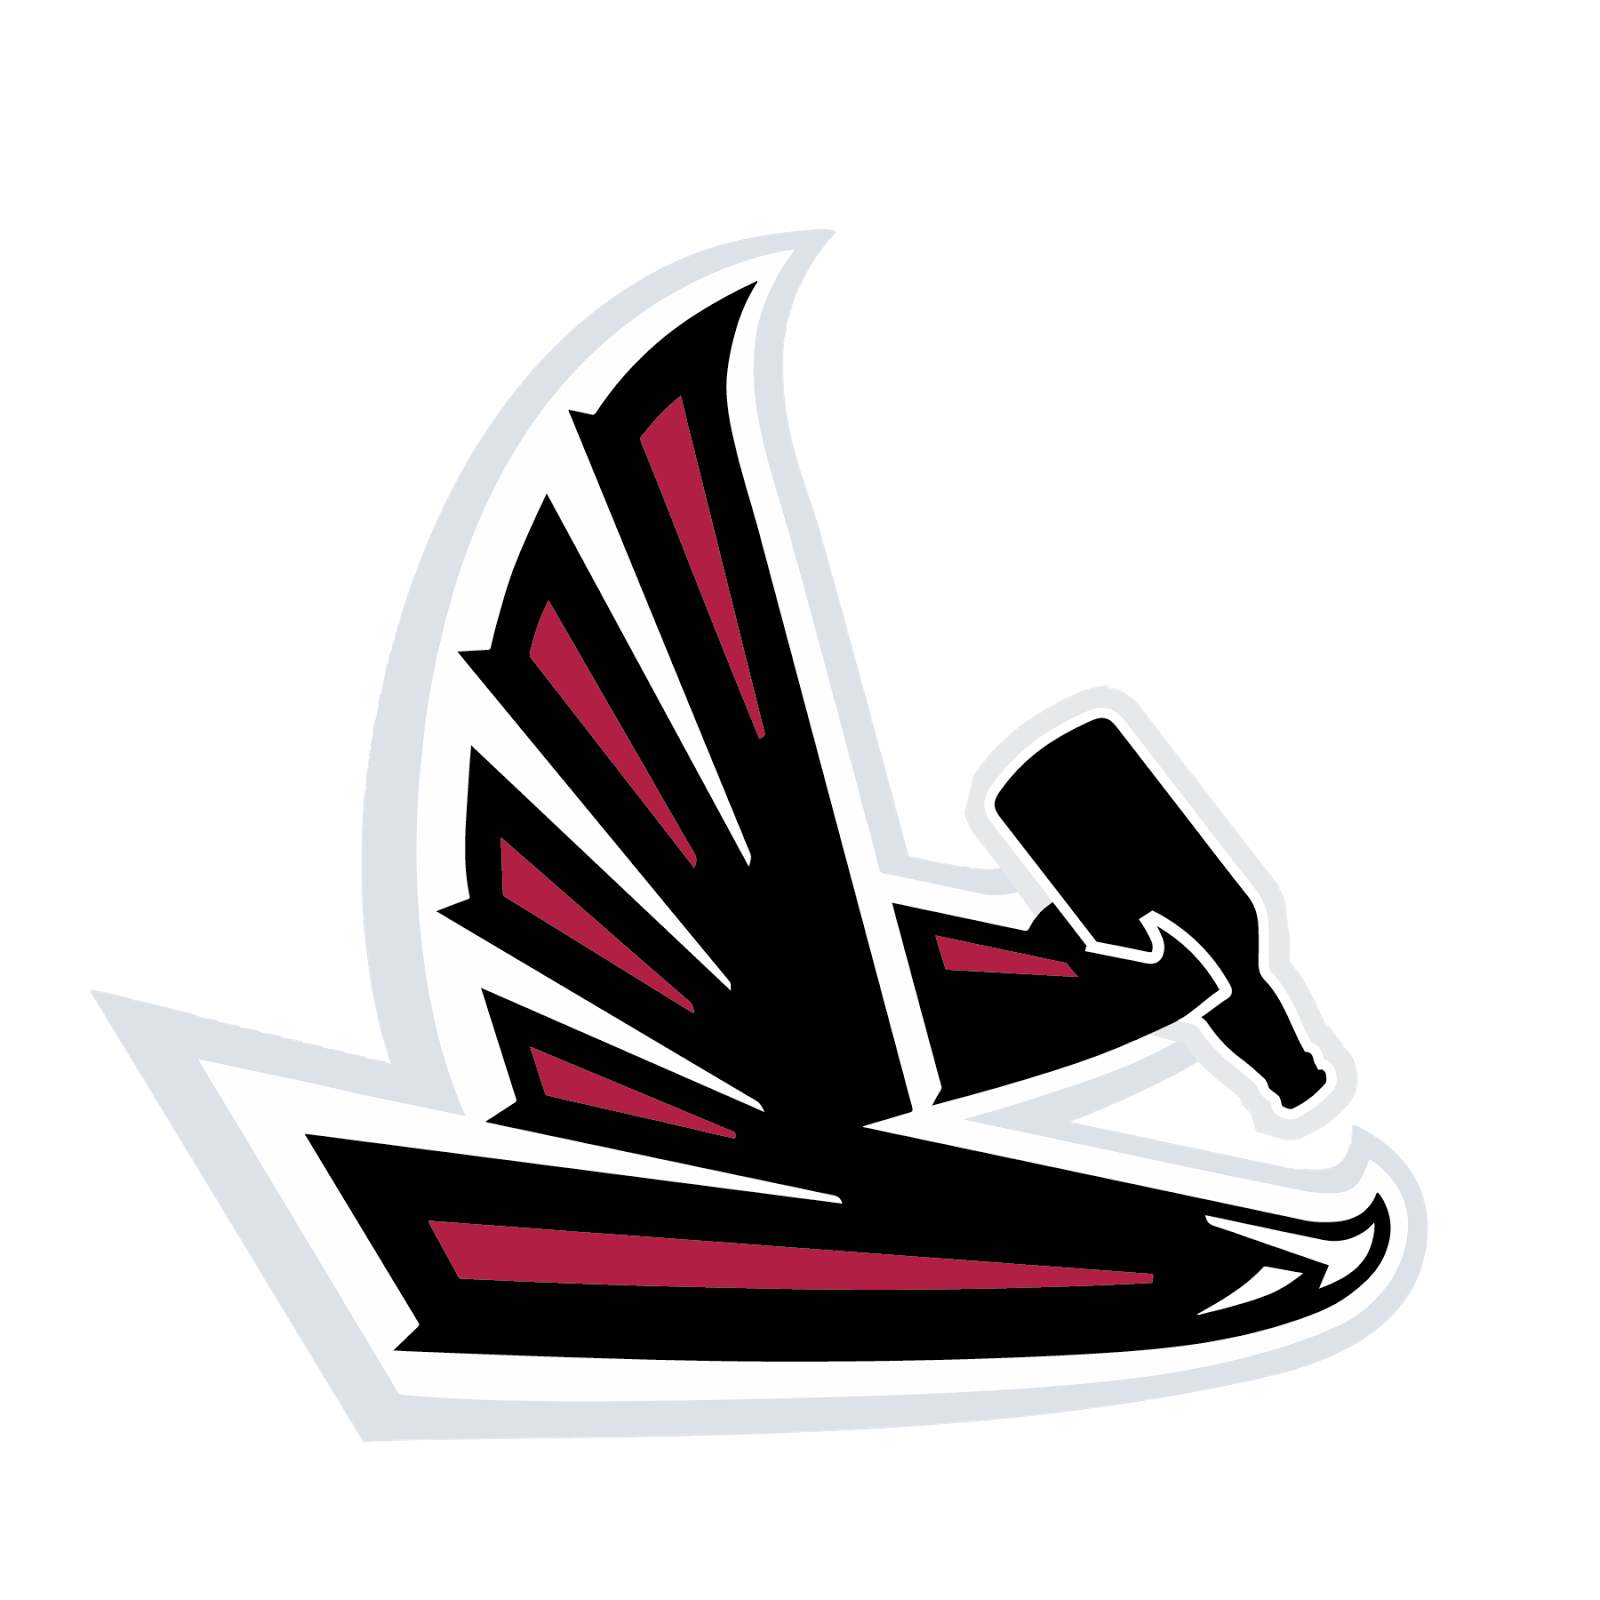 Atlanta falcons football clipart freeuse library Gotta play the Saints twice every year better start drinking to ... freeuse library